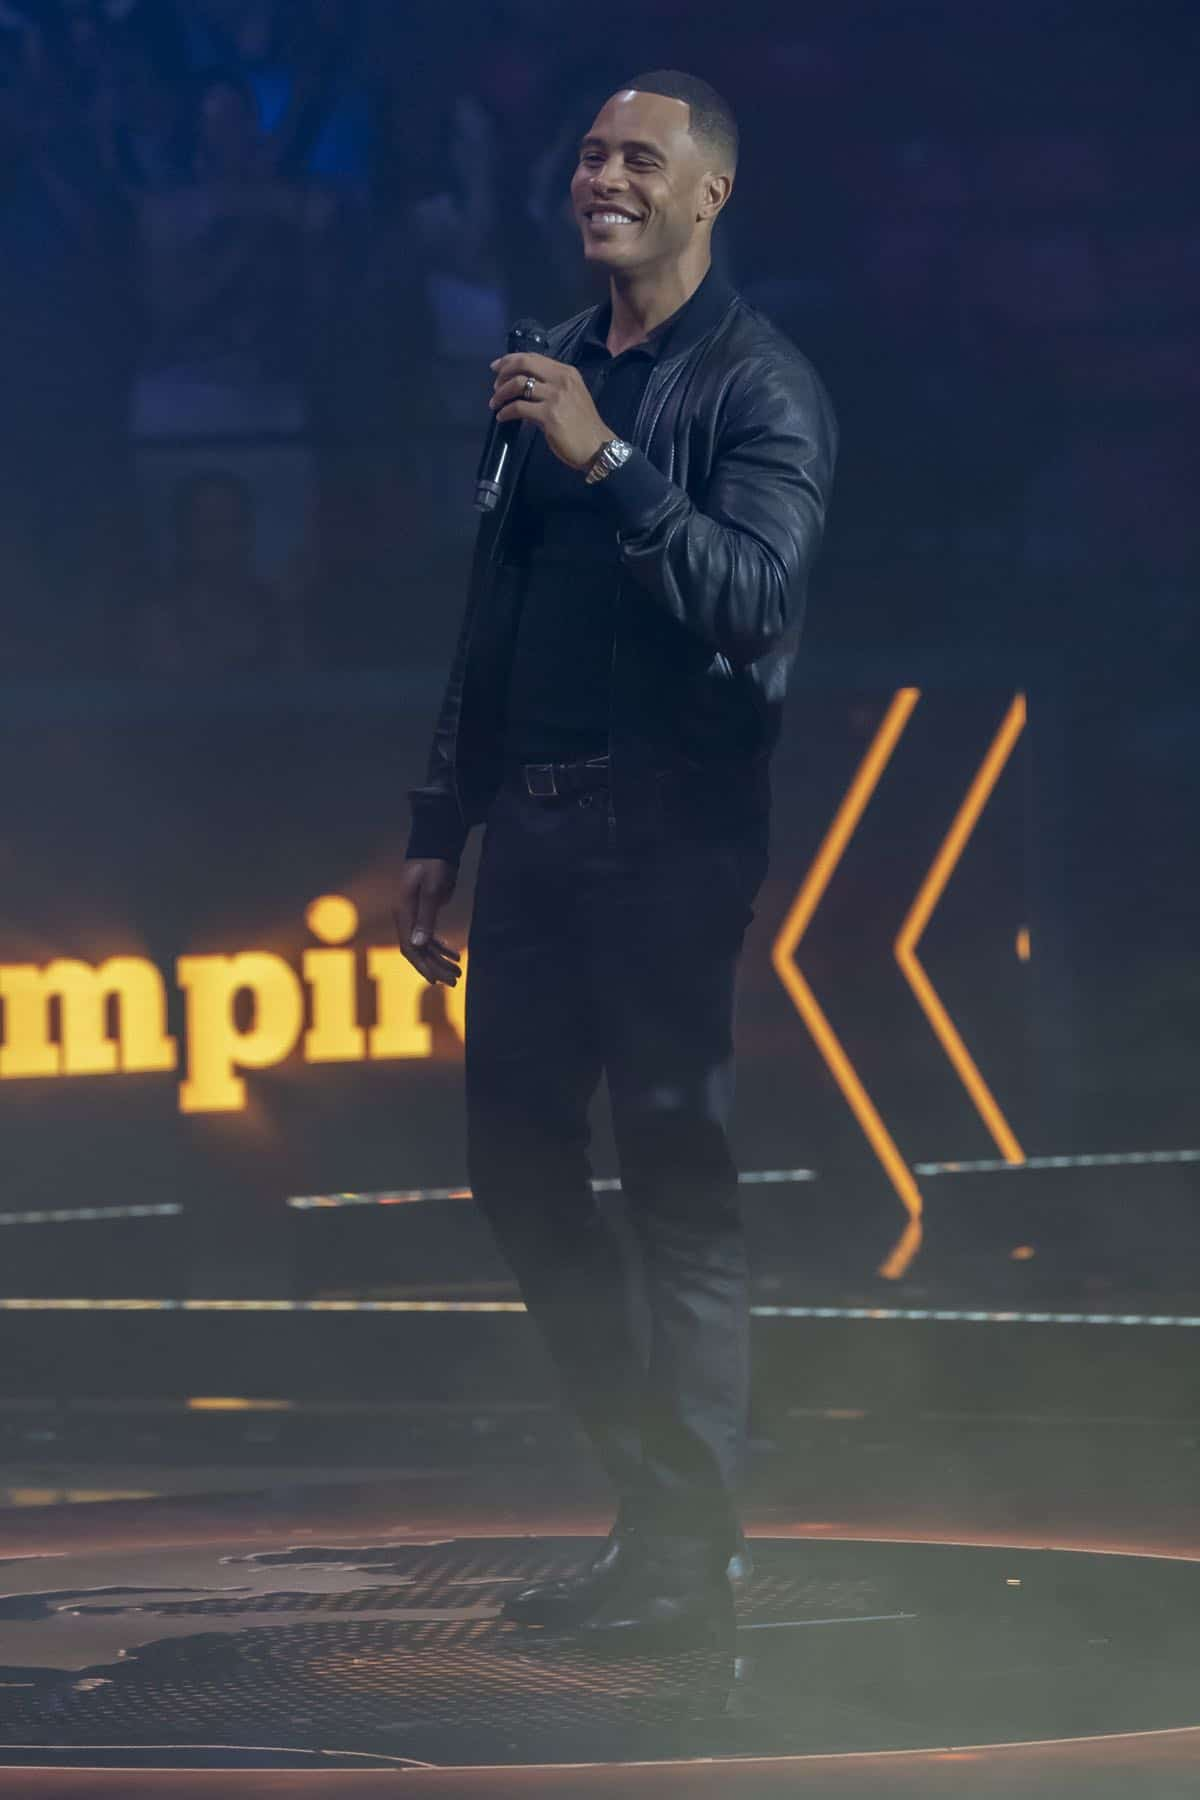 """EMPIRE: L-R: Trai Byers in the """"What Is Love"""" season premiere episode of EMPIRE airing Tuesday, Sept. 24 (9:00-10:00 PM ET/PT) on FOX. ©2019 Fox Broadcasting Co. All Rights Reserved. CR: Chuck Hodes/FOX."""